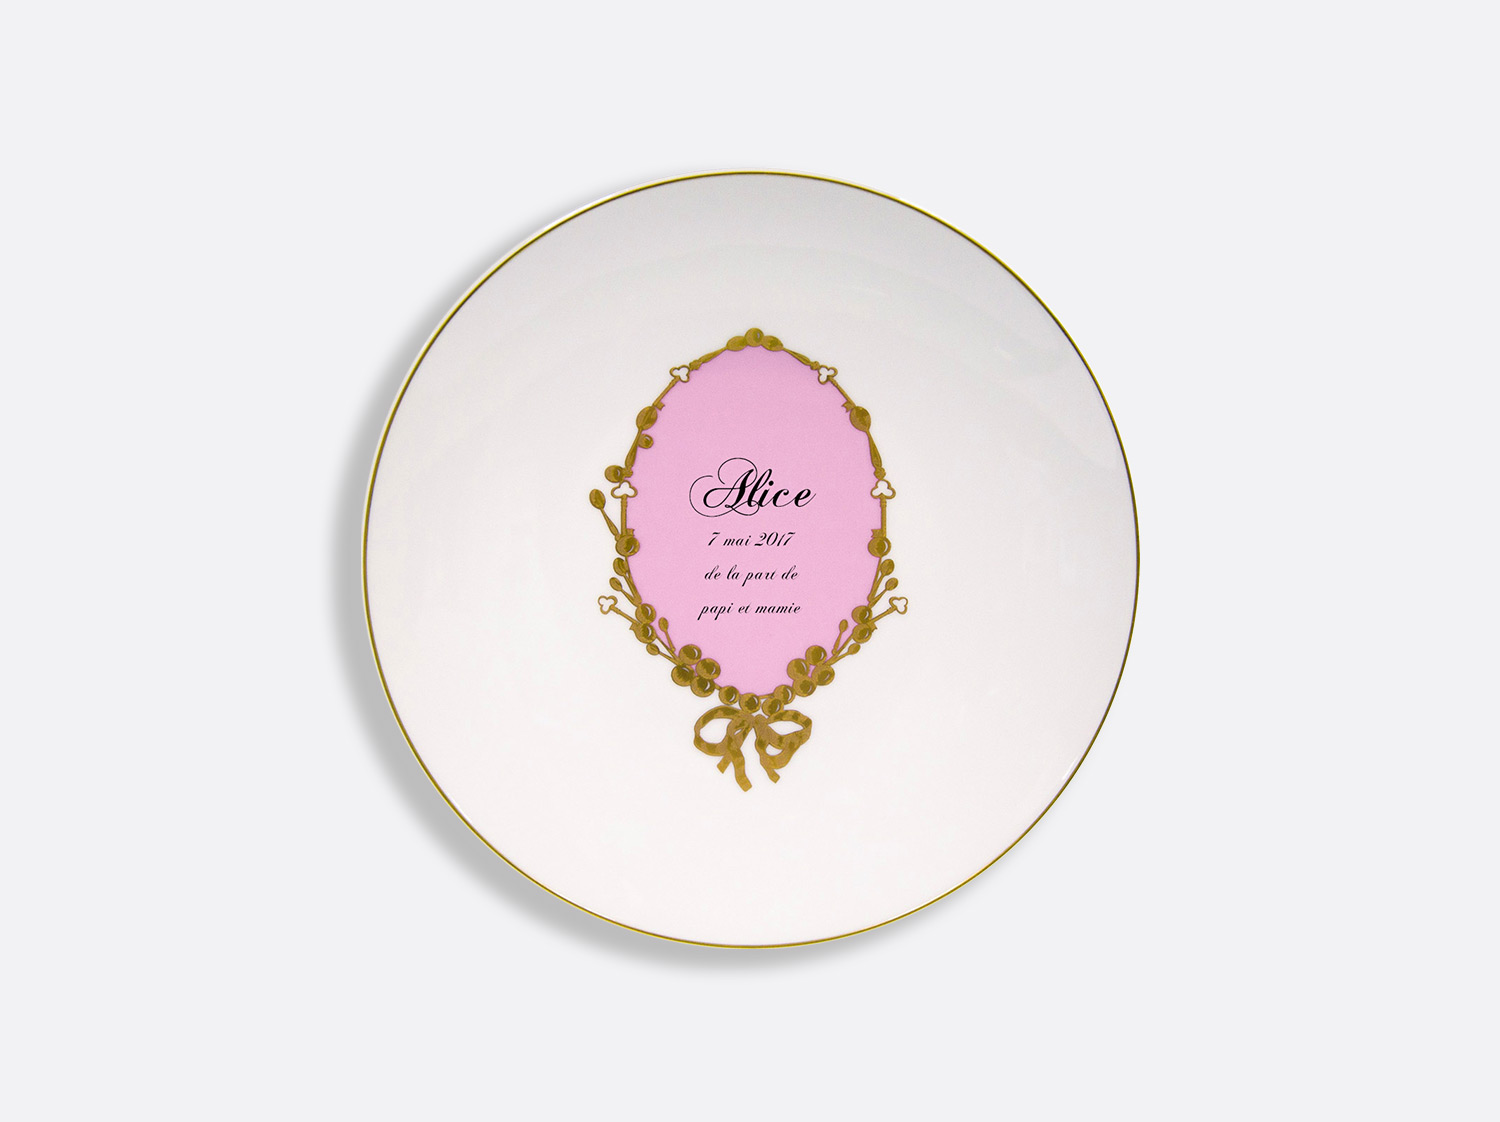 China Salad plate 21 cm of the collection Medaillon Rose - Personnalisation | Bernardaud